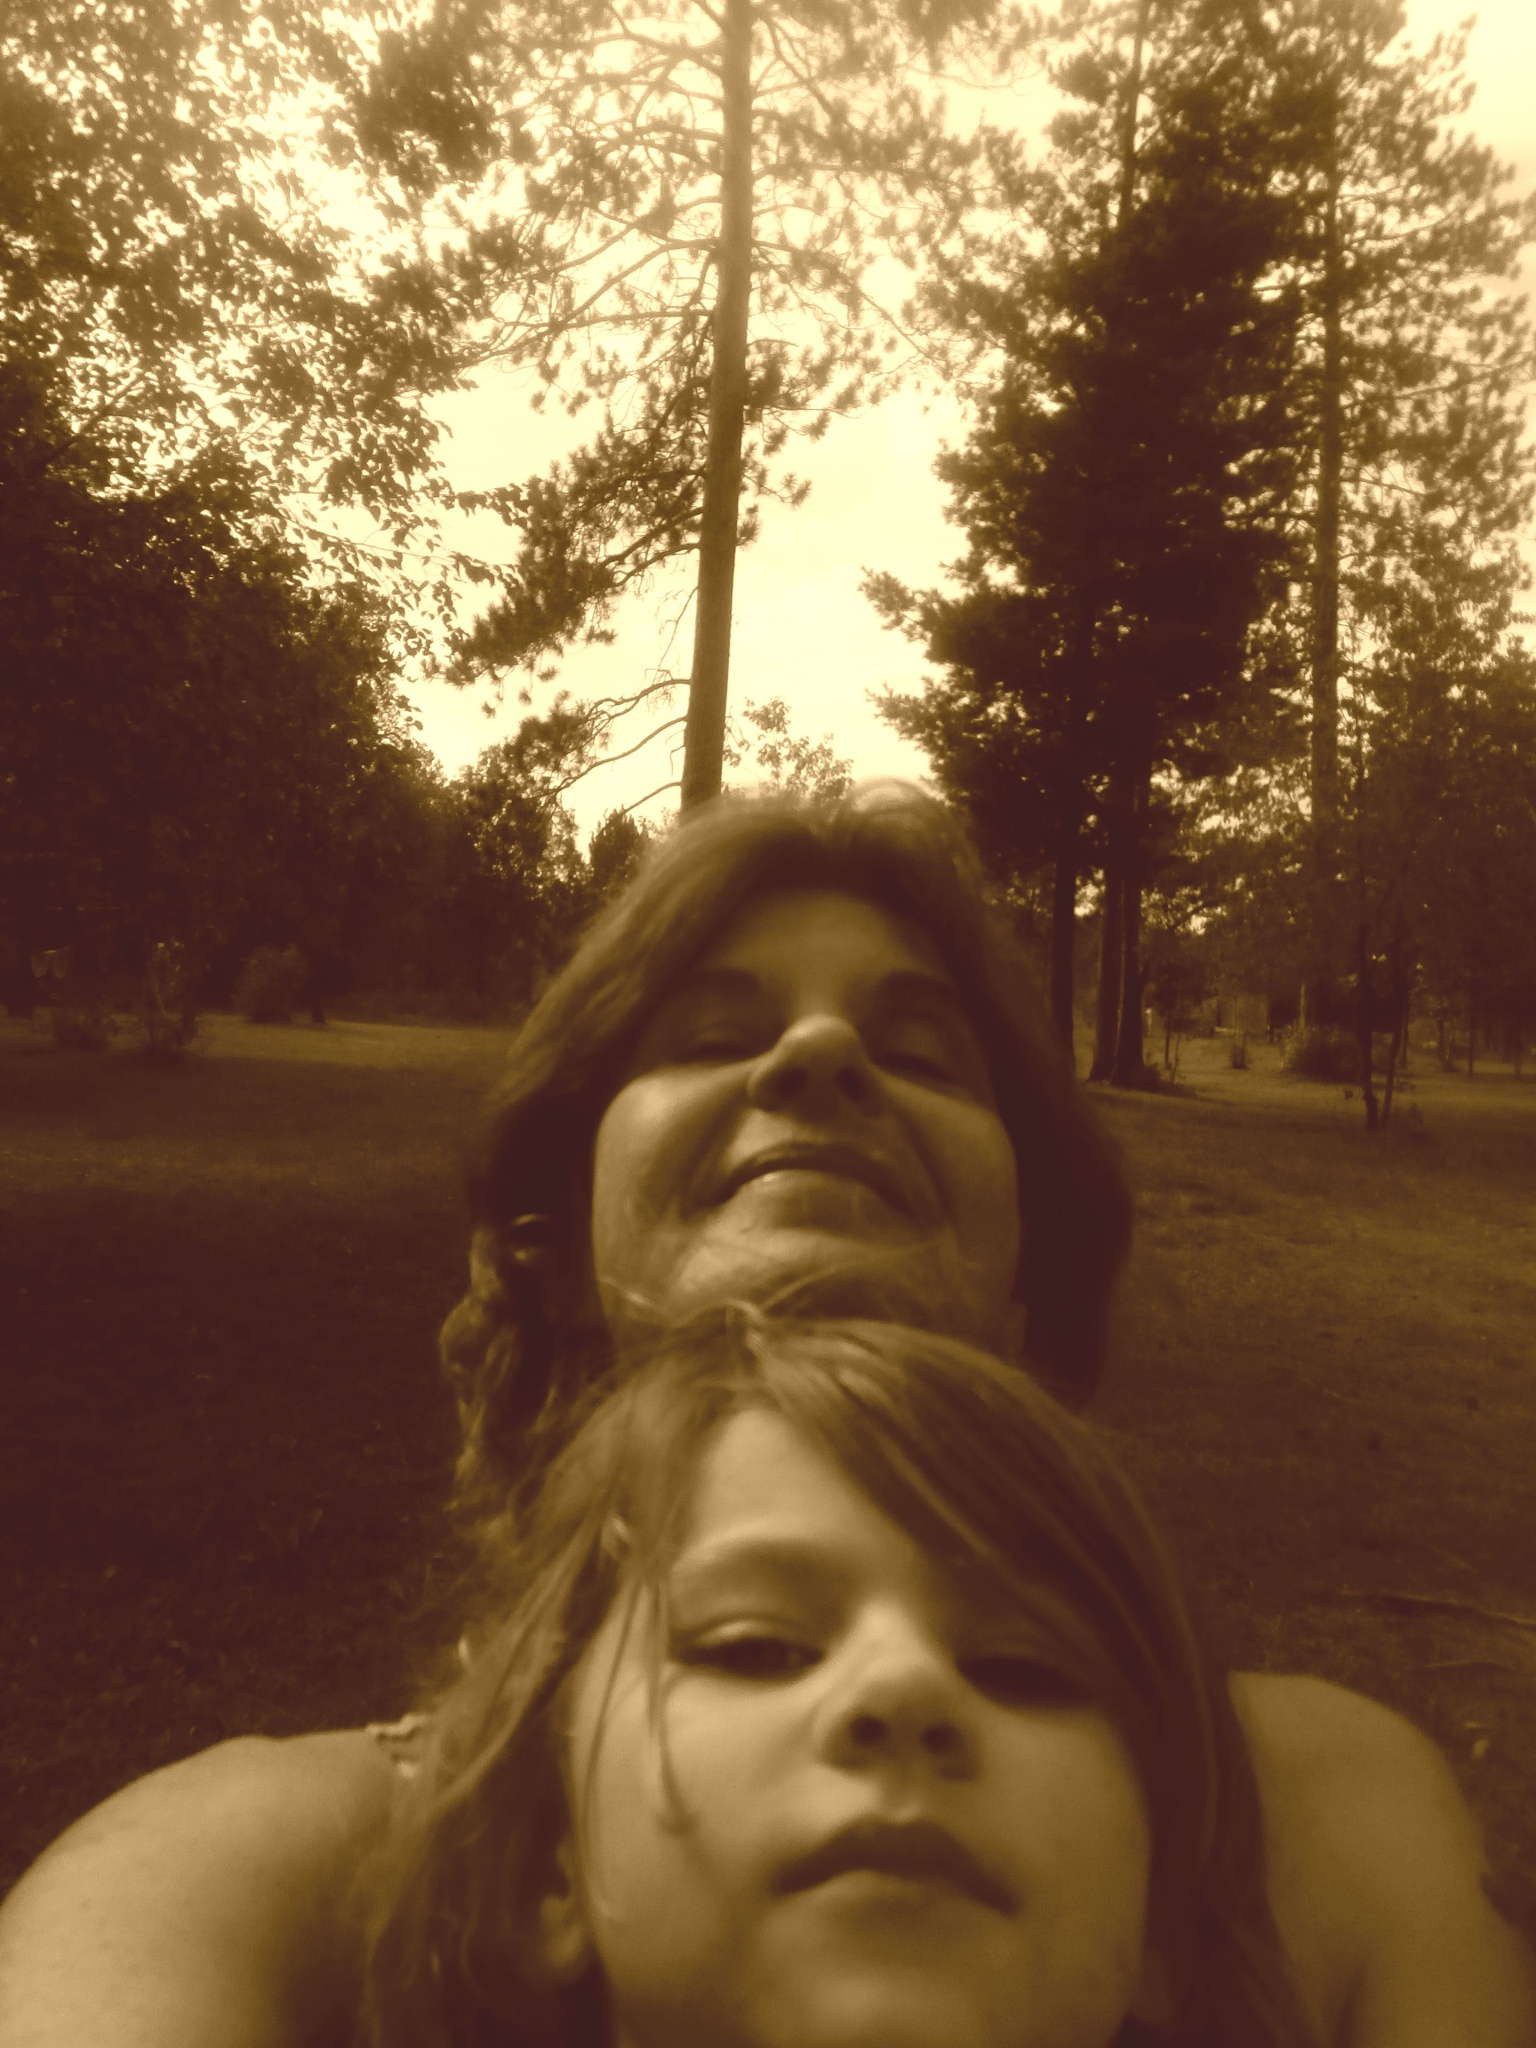 me and layla by tina.linge.3